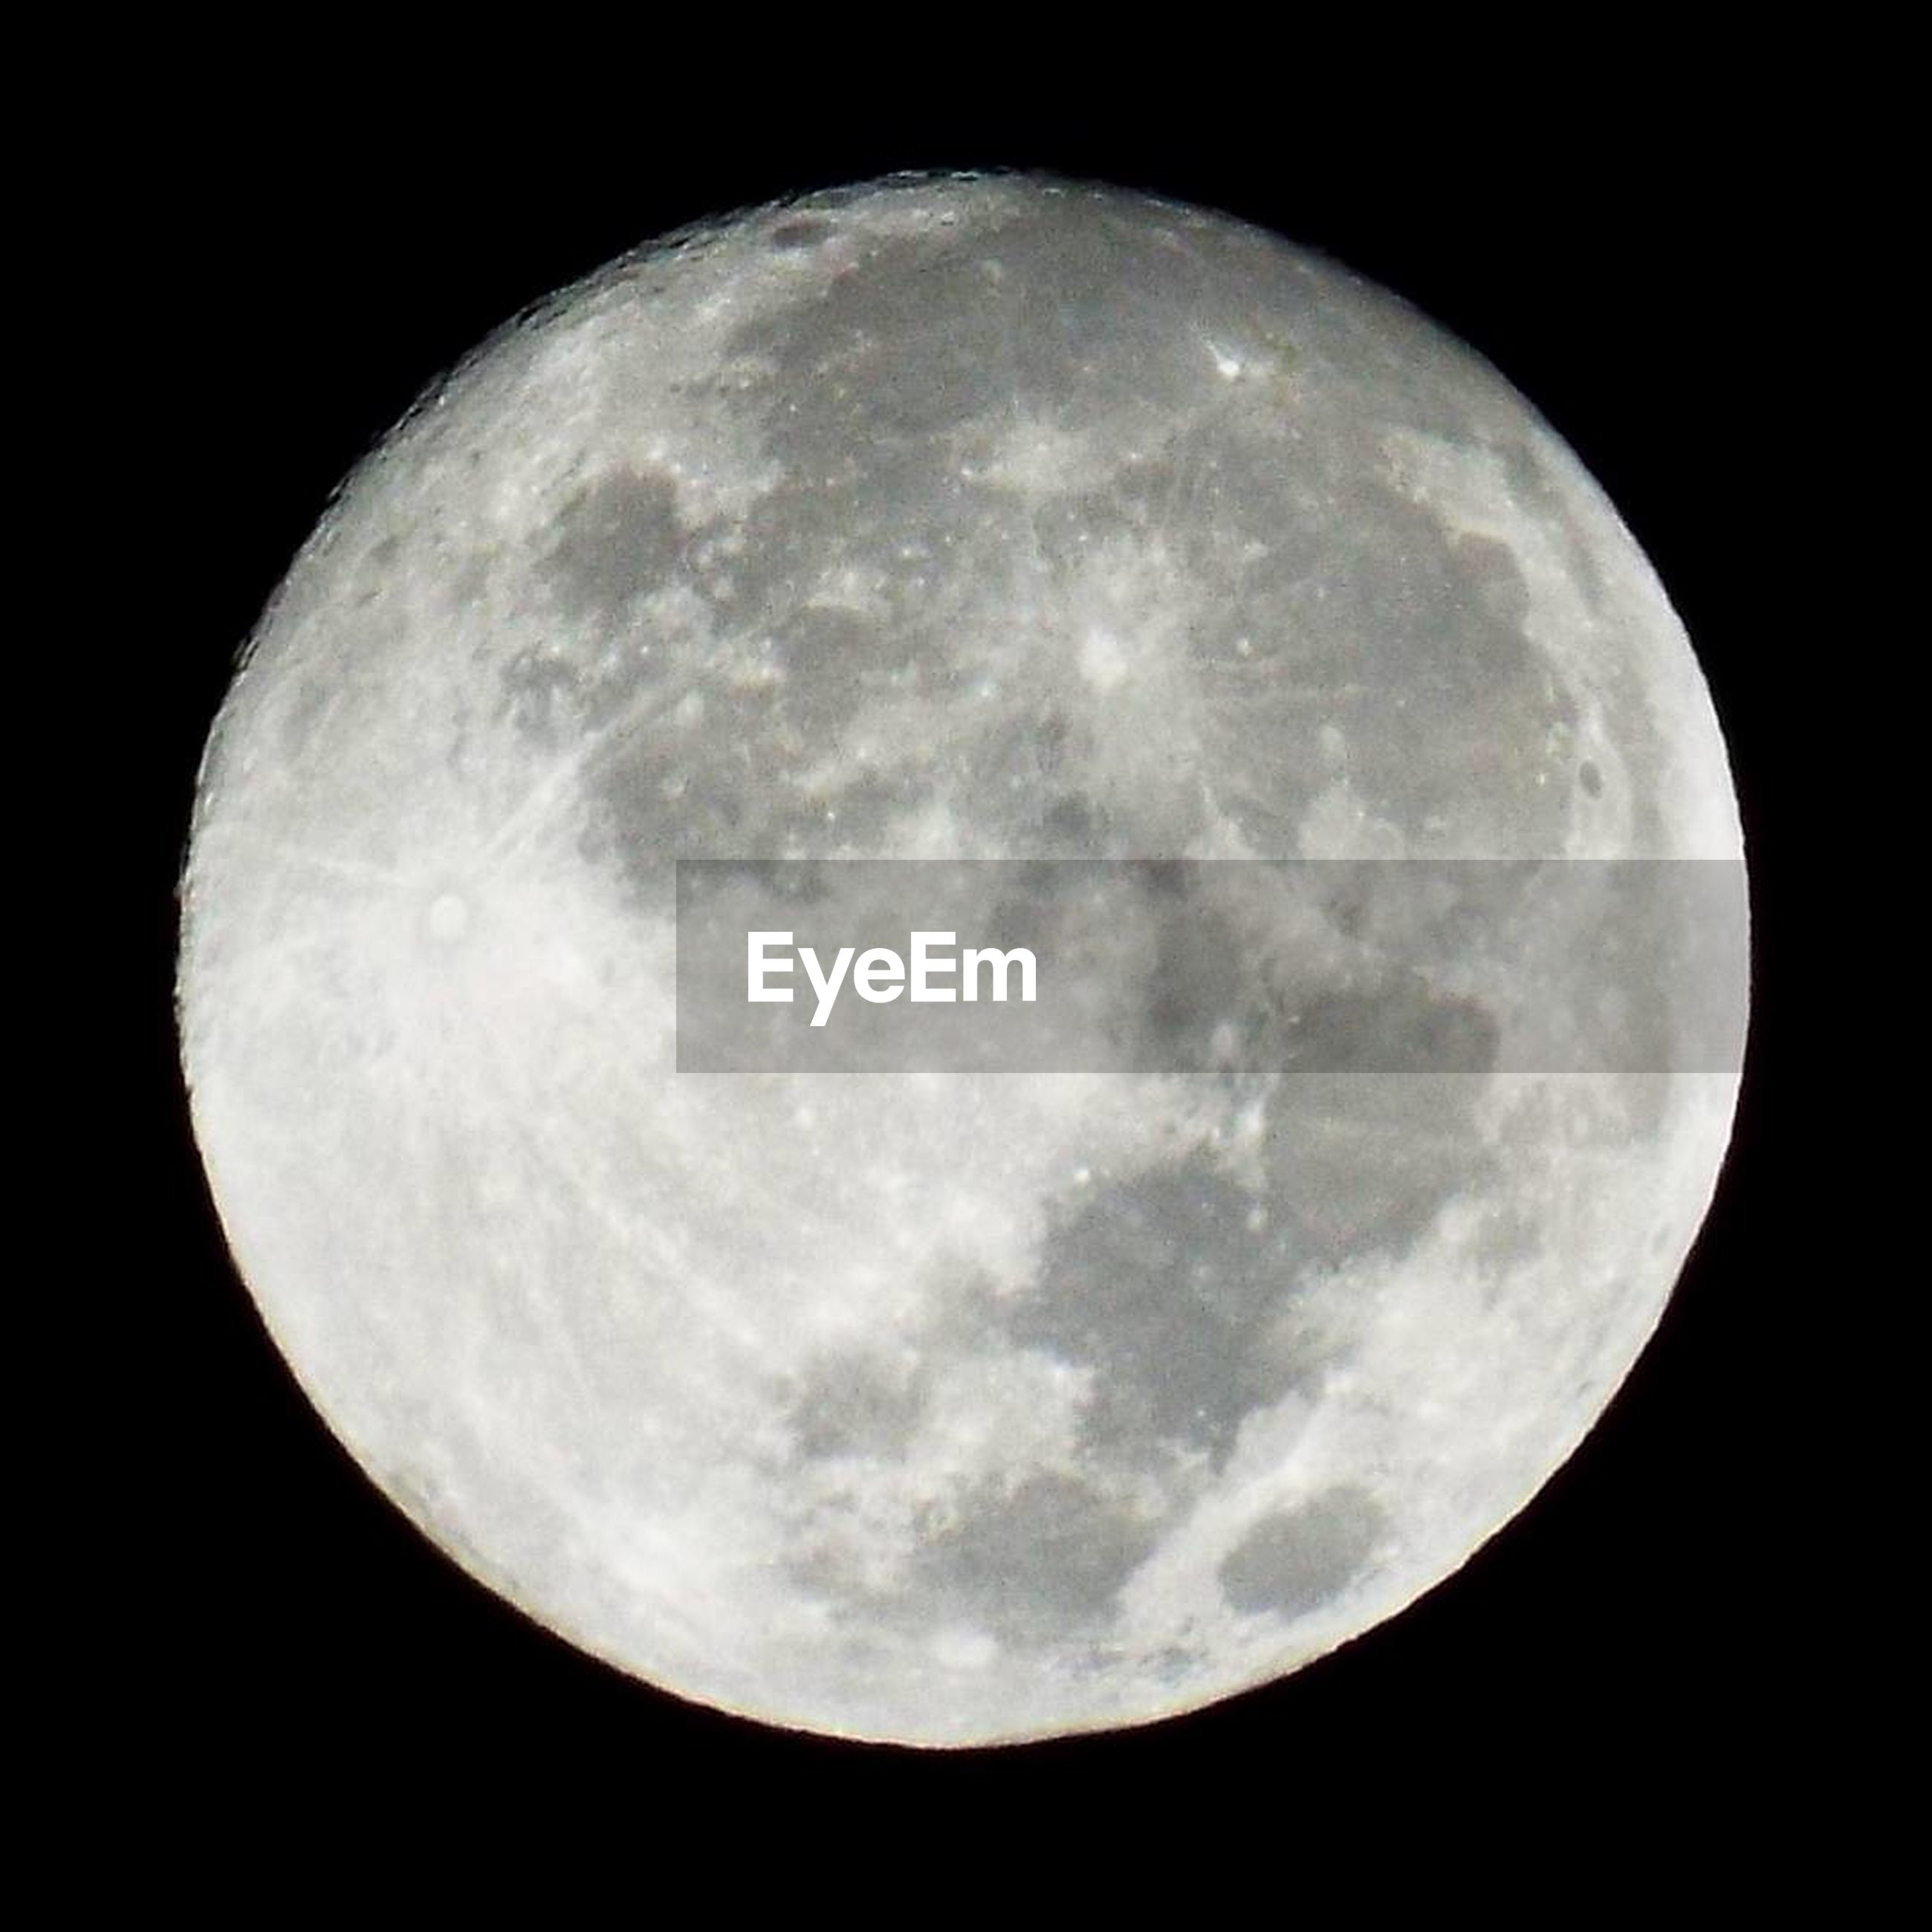 moon, night, moon surface, full moon, planetary moon, astronomy, circle, beauty in nature, nature, space exploration, scenics, tranquility, discovery, tranquil scene, space, half moon, sky, moonlight, no people, close-up, outdoors, low angle view, clear sky, satellite view